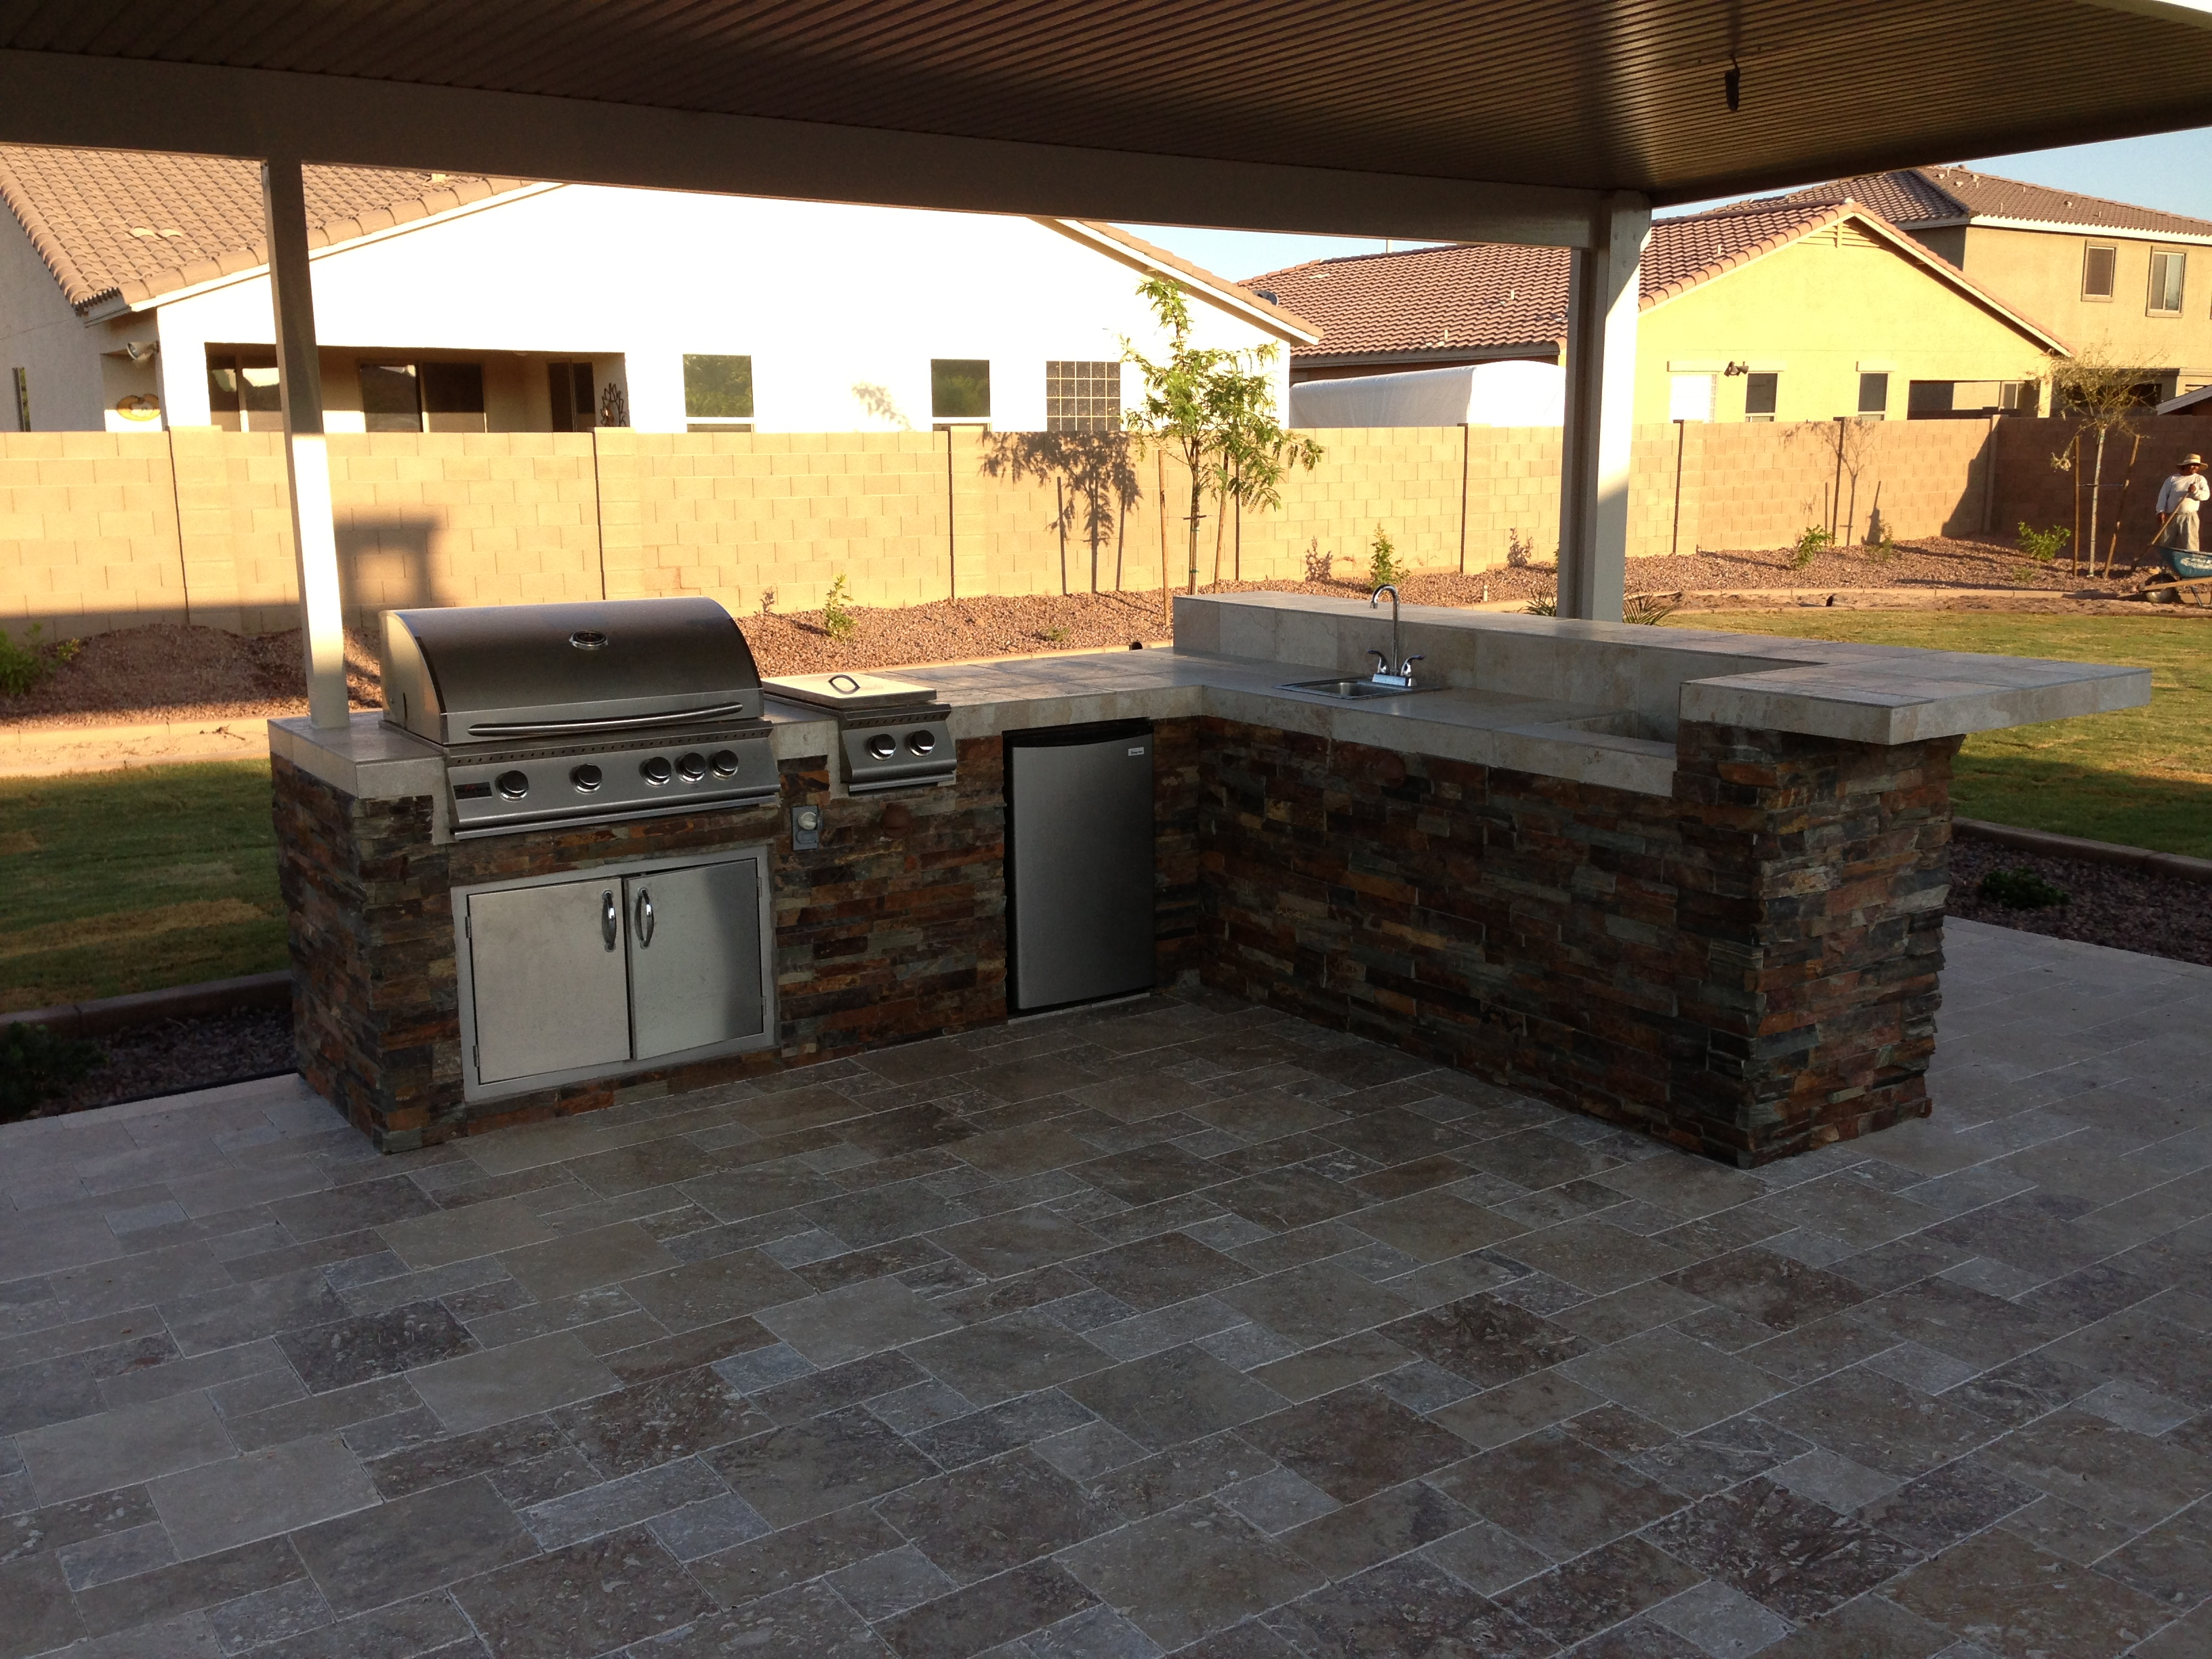 Using Outdoor Kitchens Are A Great Way To Enjoy The Beautiful ...